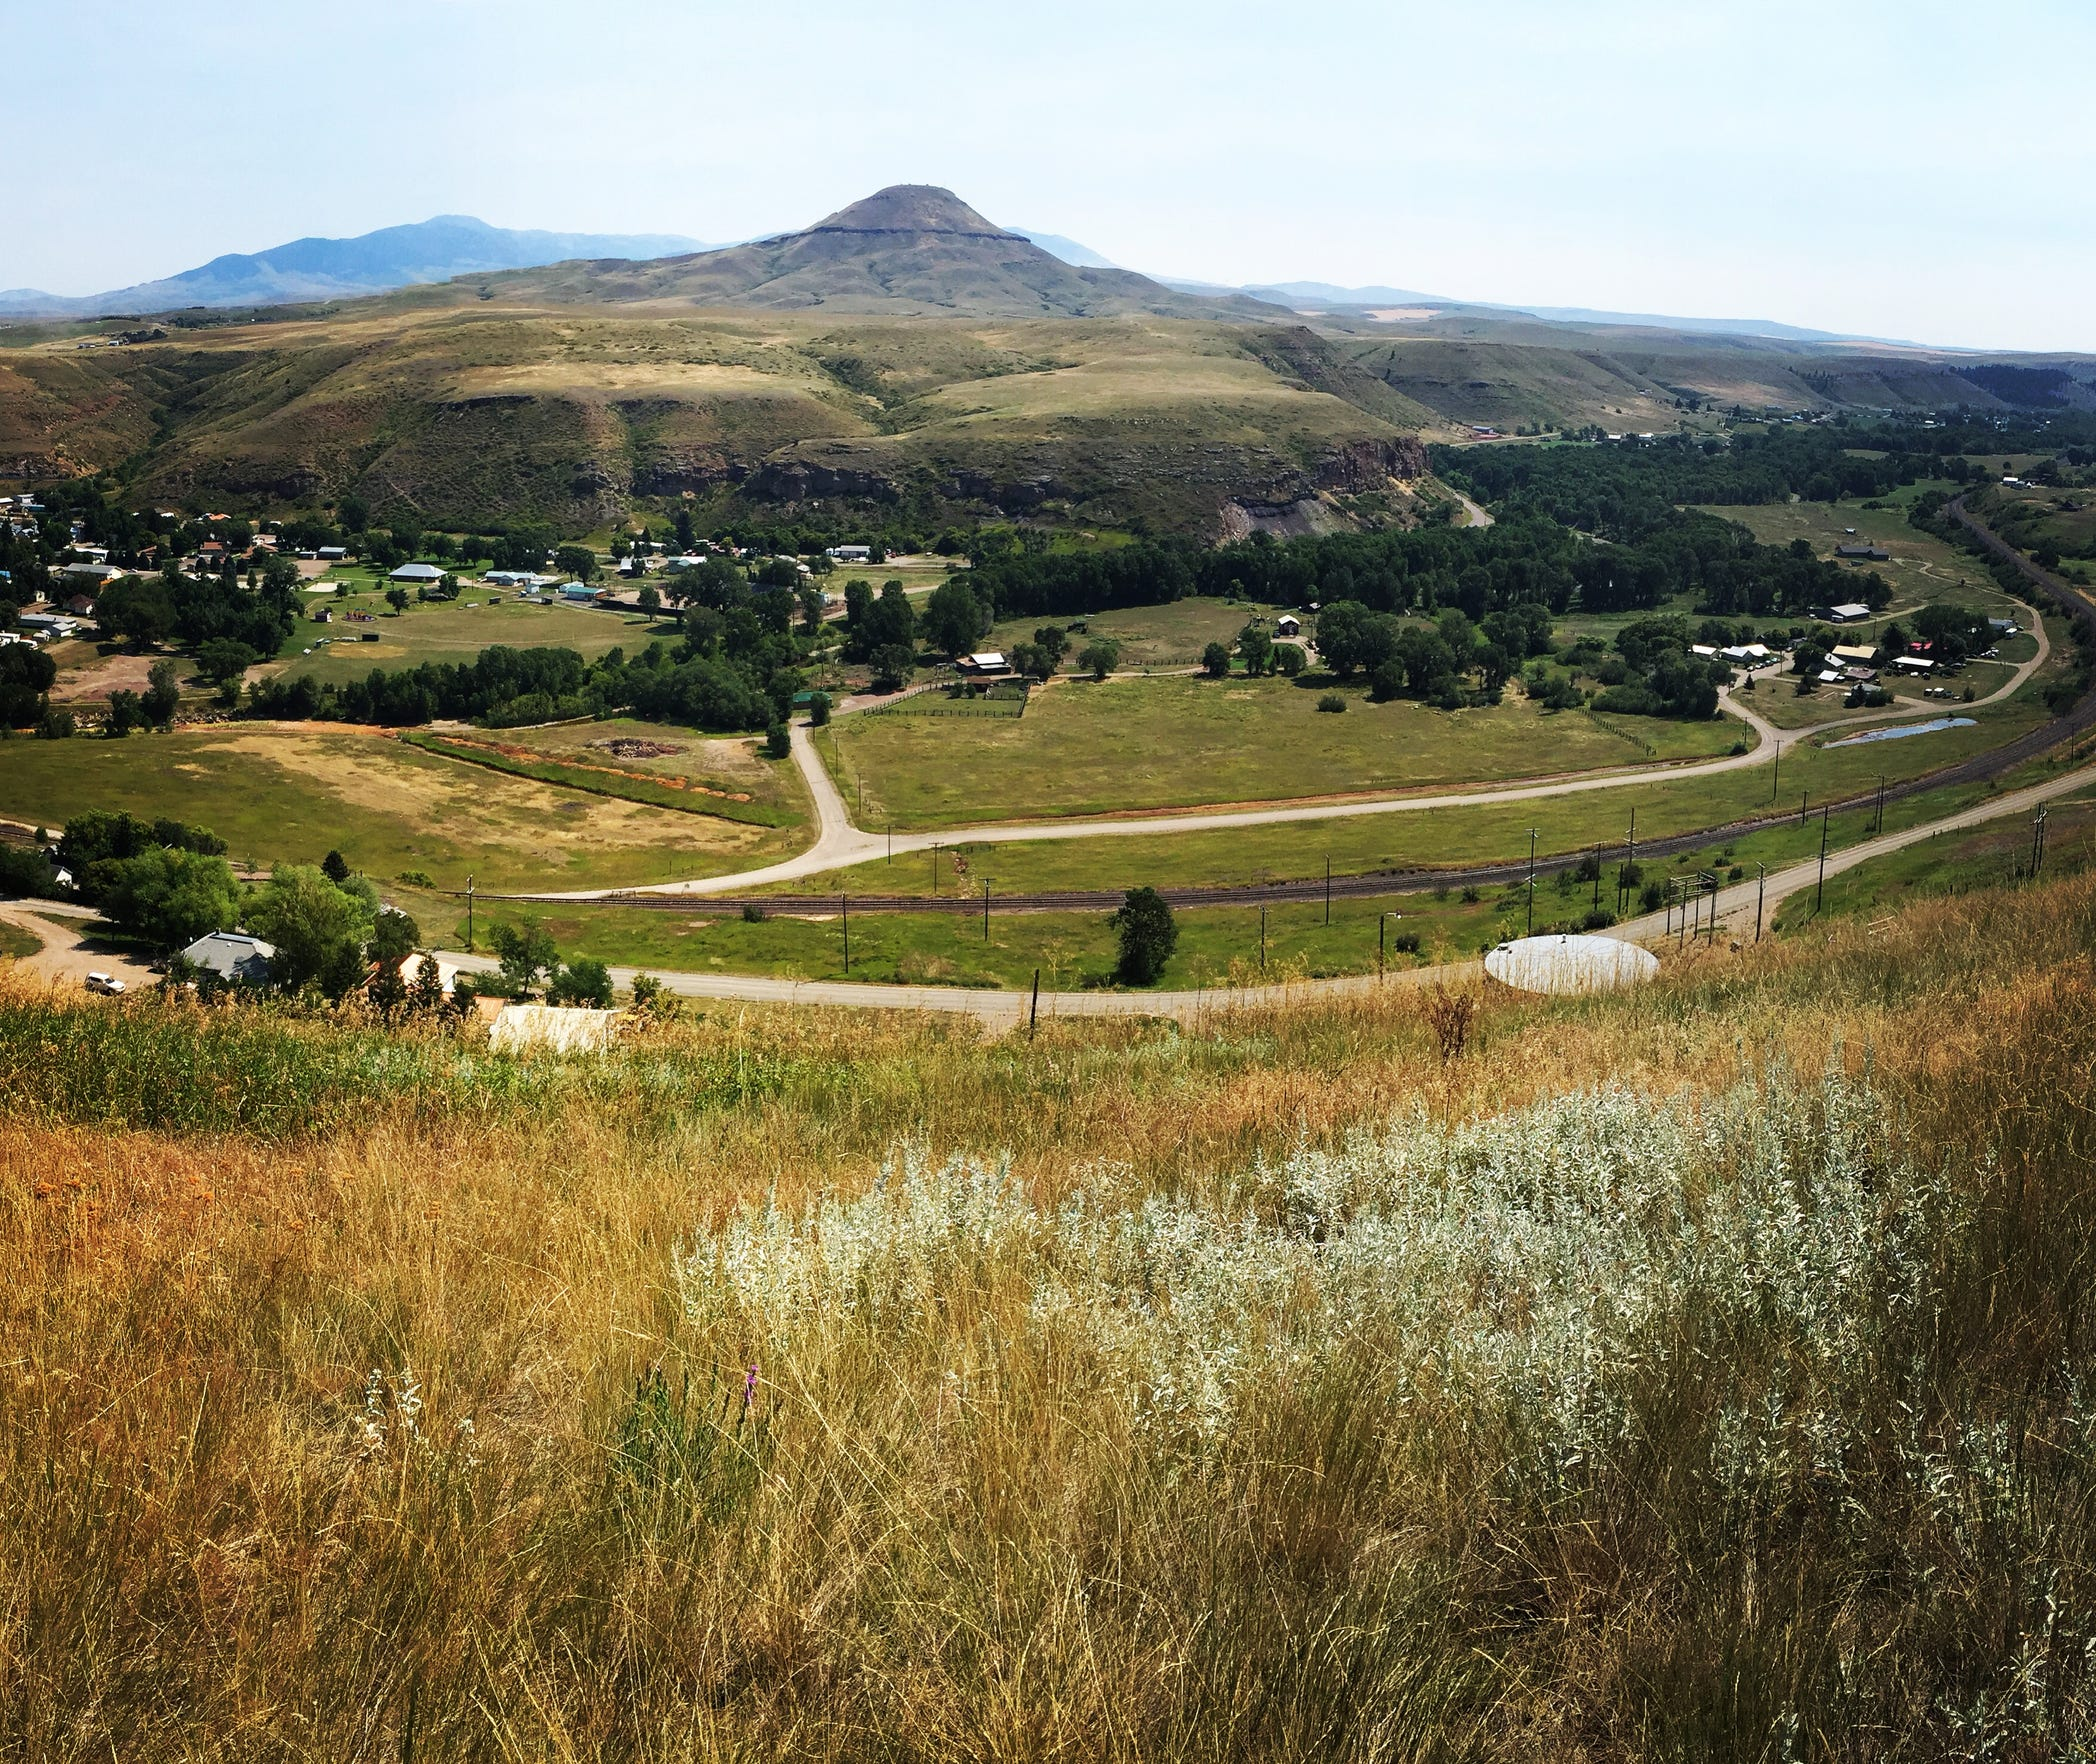 The water treatment plant will be constructed on this bluff above the town of Belt.